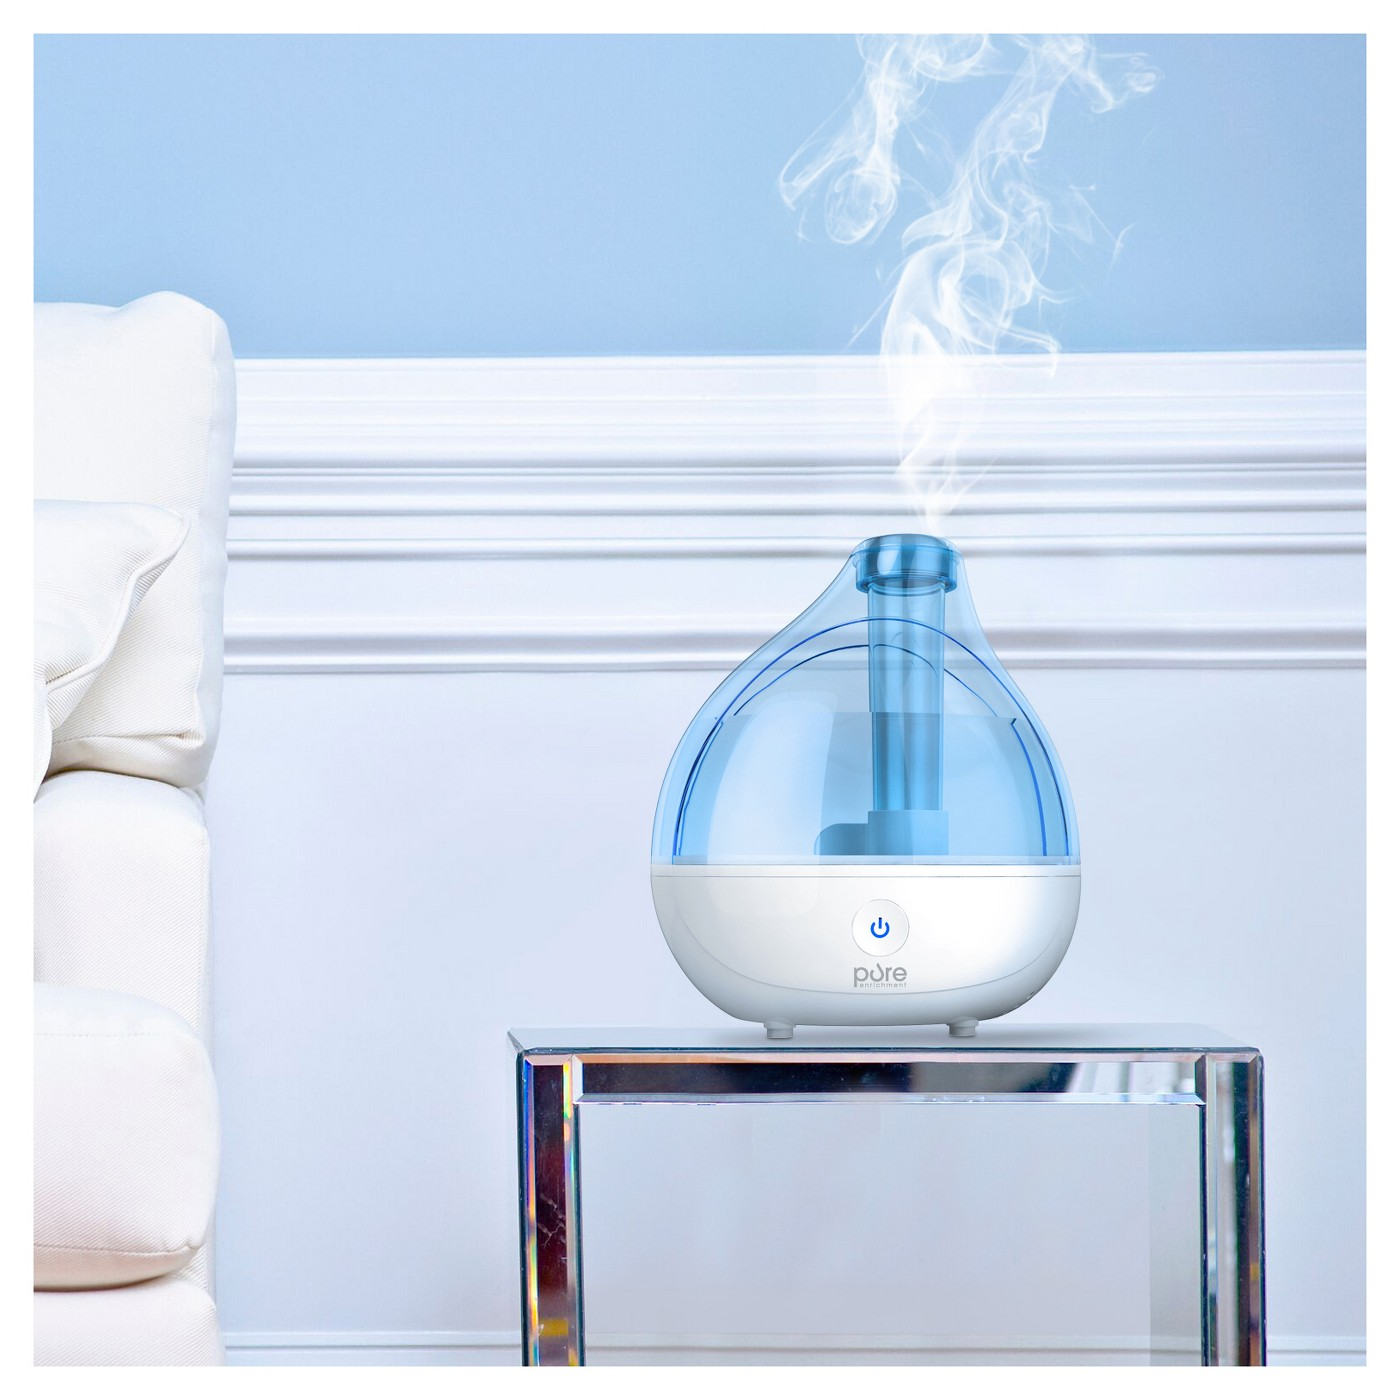 TCF Gift Guide: Pure Ultrasonic Cool Mist Humidifier